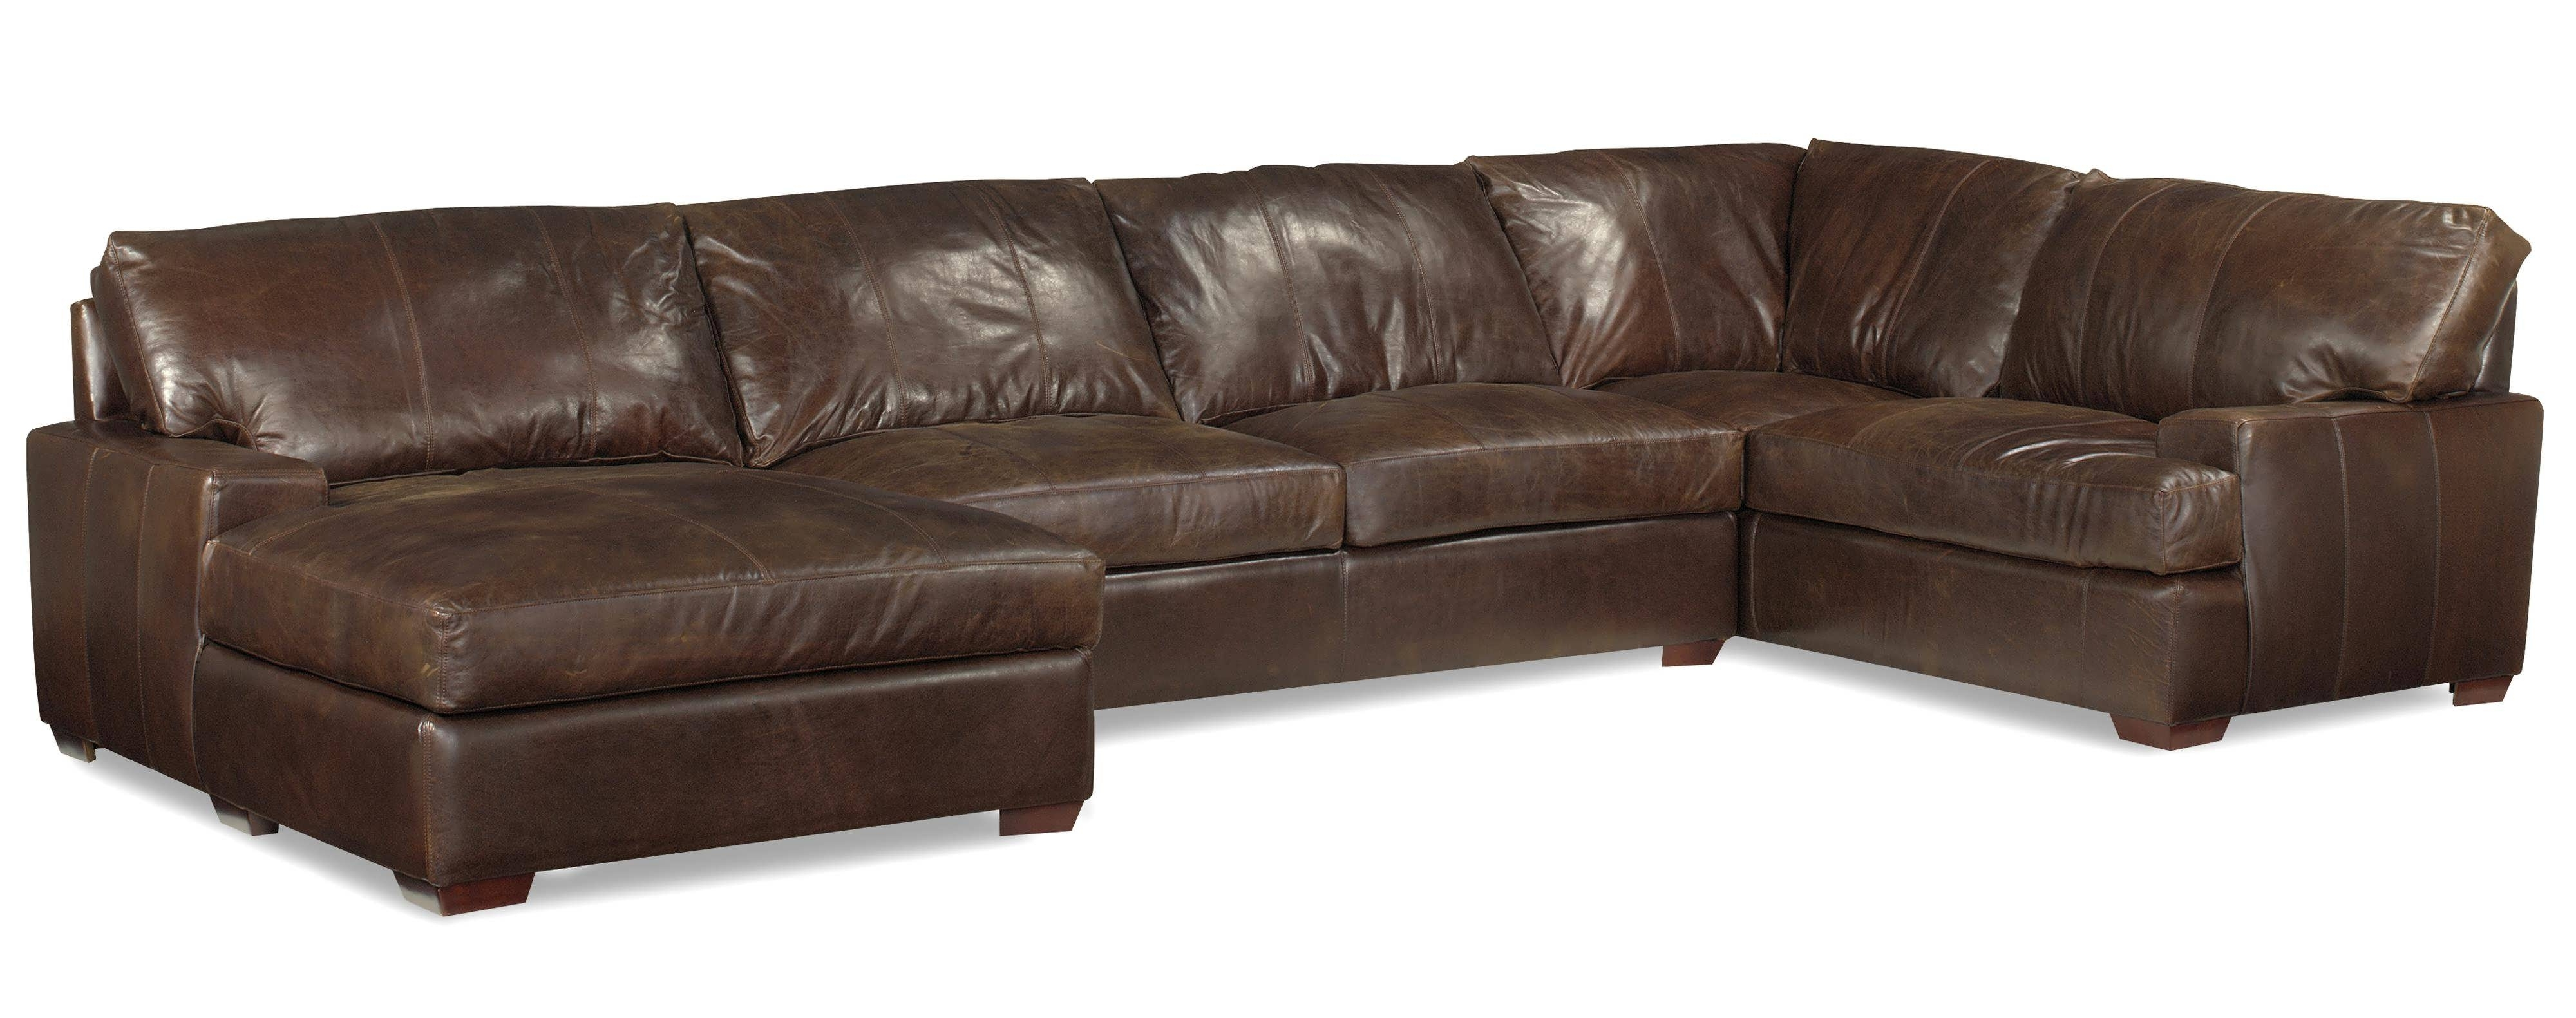 Leather Sofas With Chaise In Latest Sofa : Sectional Furniture Oversized Sectionals White Leather (View 15 of 15)